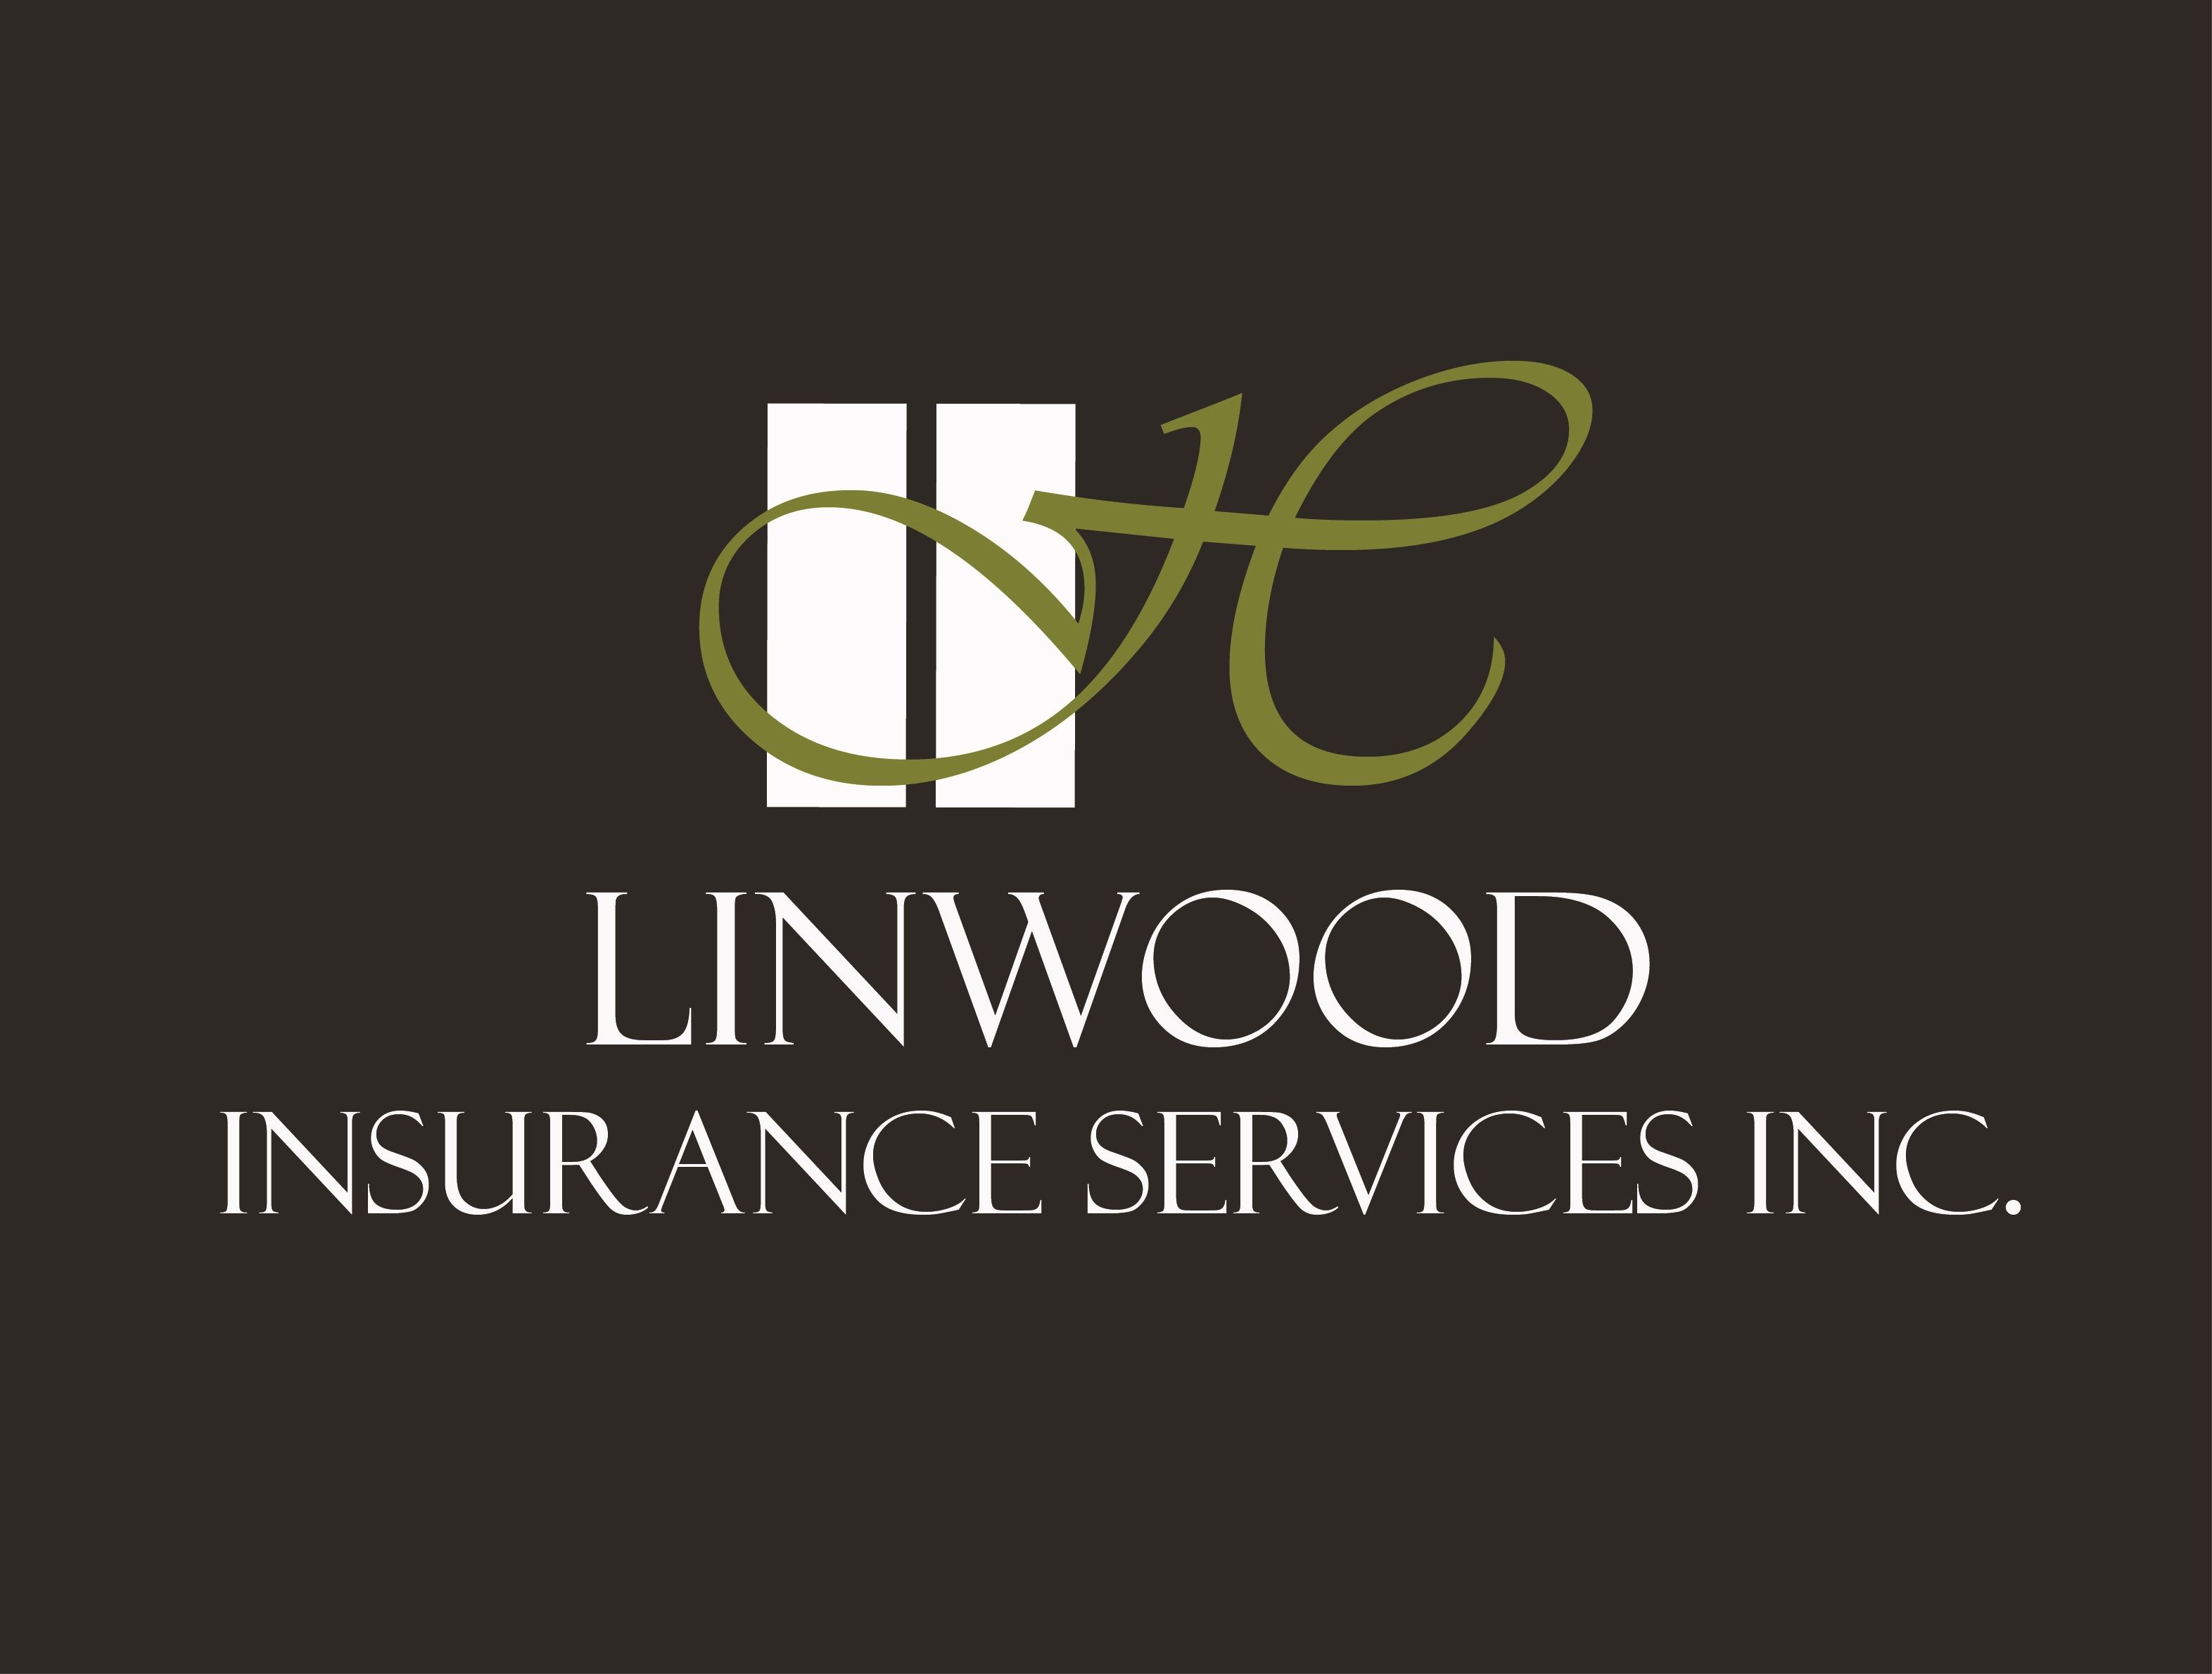 H linwood insurance services linwood insurance service